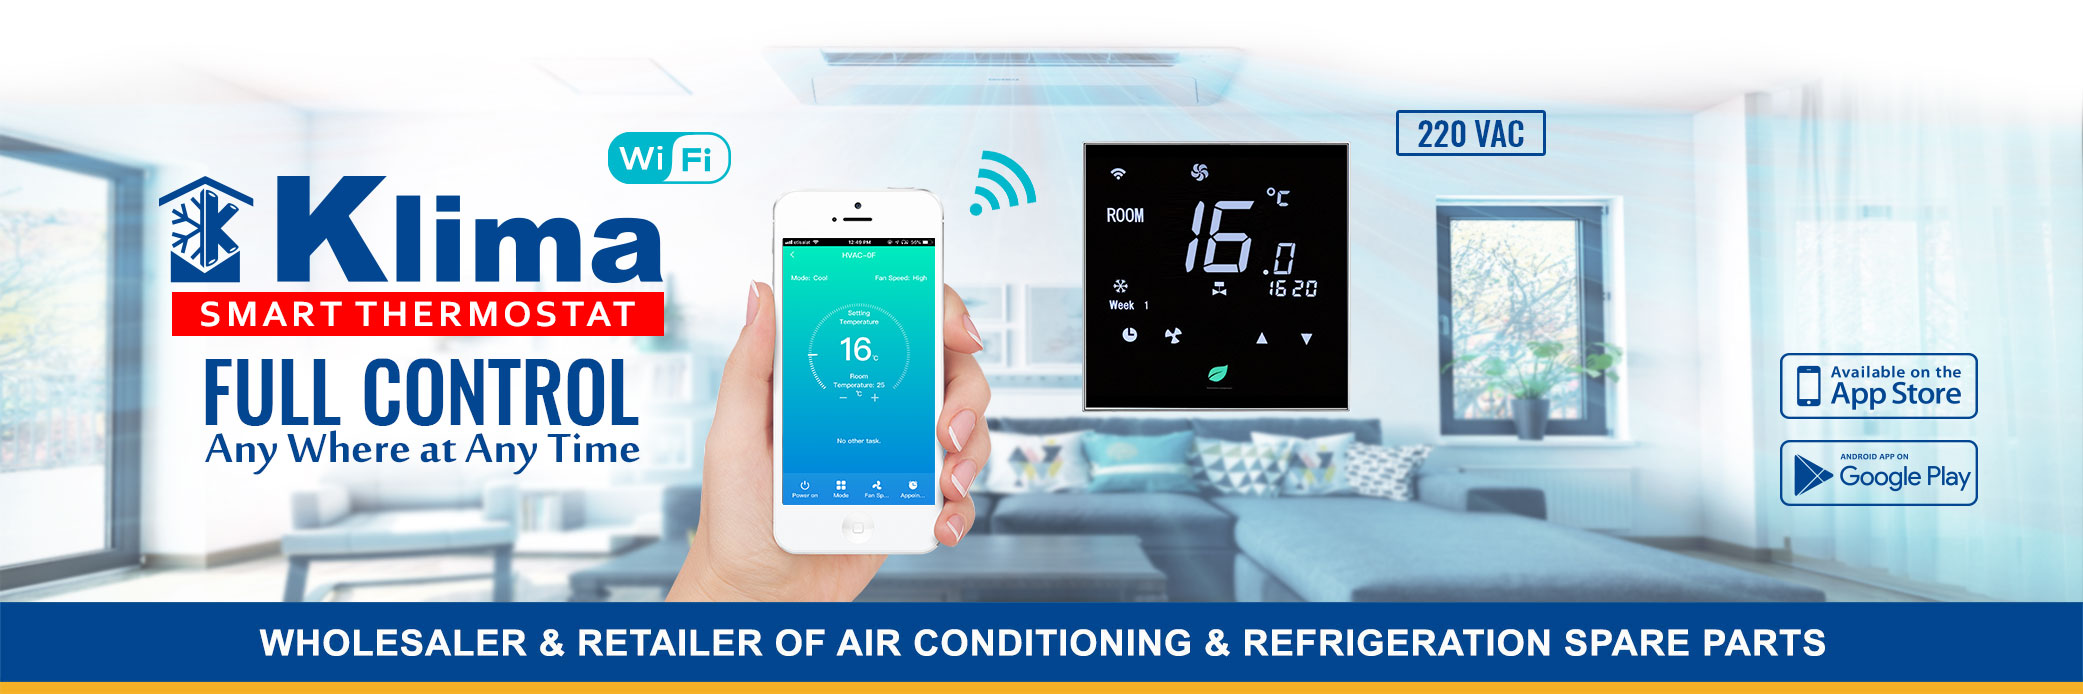 Klima 220v AC WiFi Thermostat Suppliers in Dubai